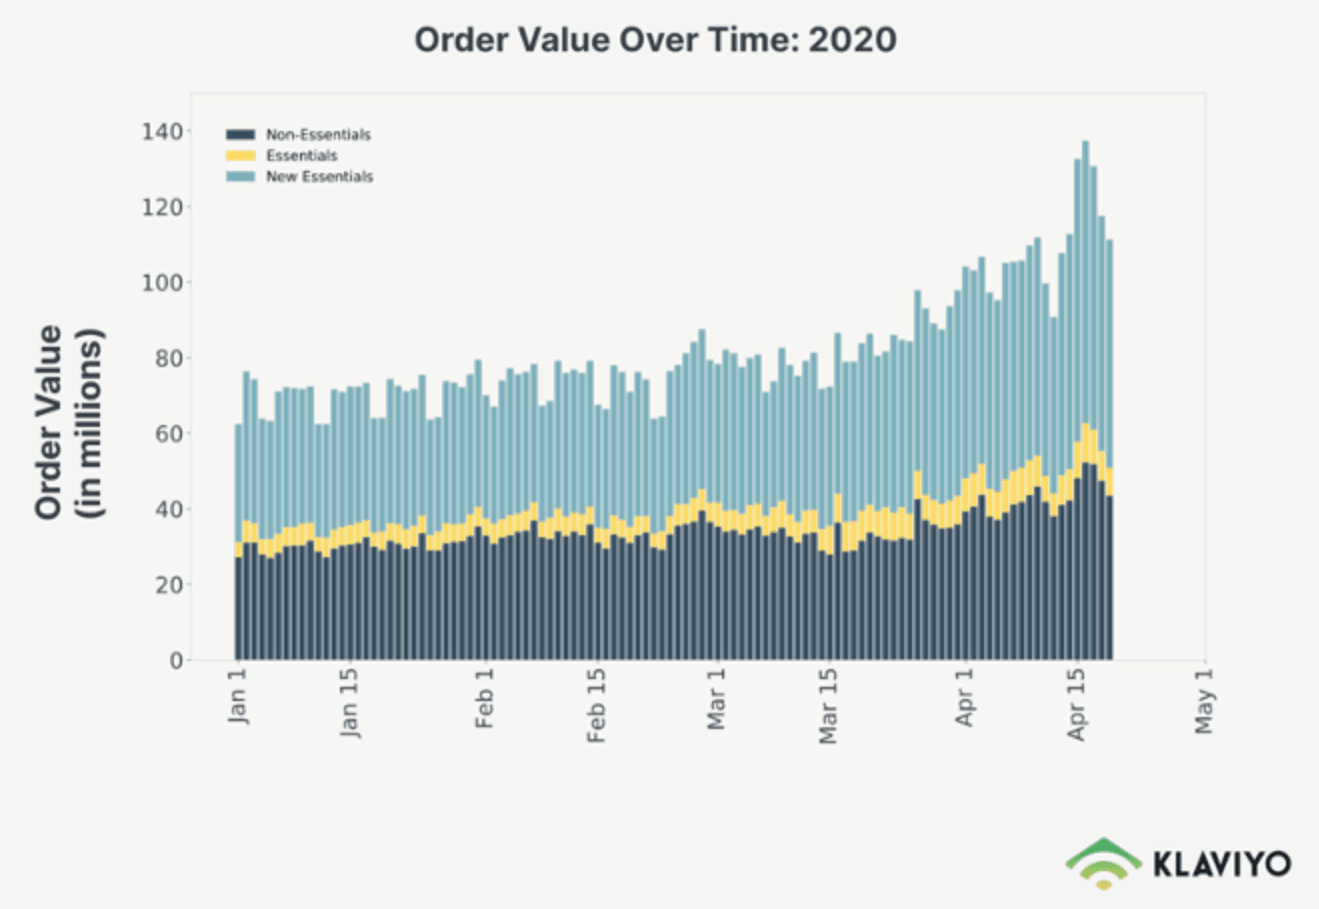 A line graph of changing order value trends over time